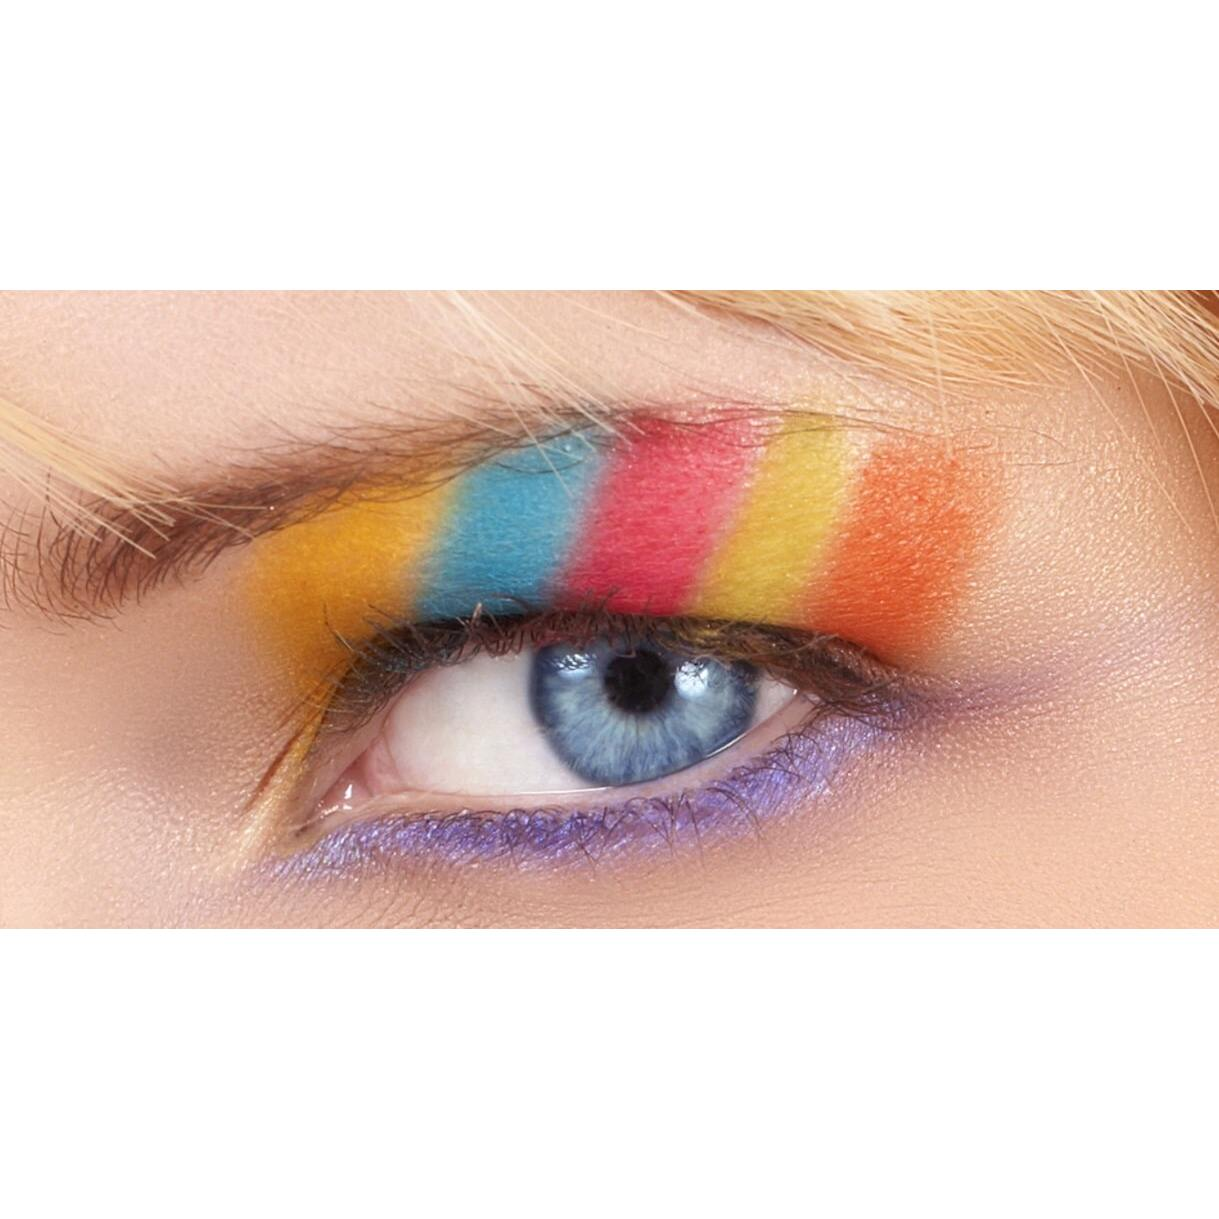 Marketti Academy of Cosmetology - Waterford, MI - Vocational Schools